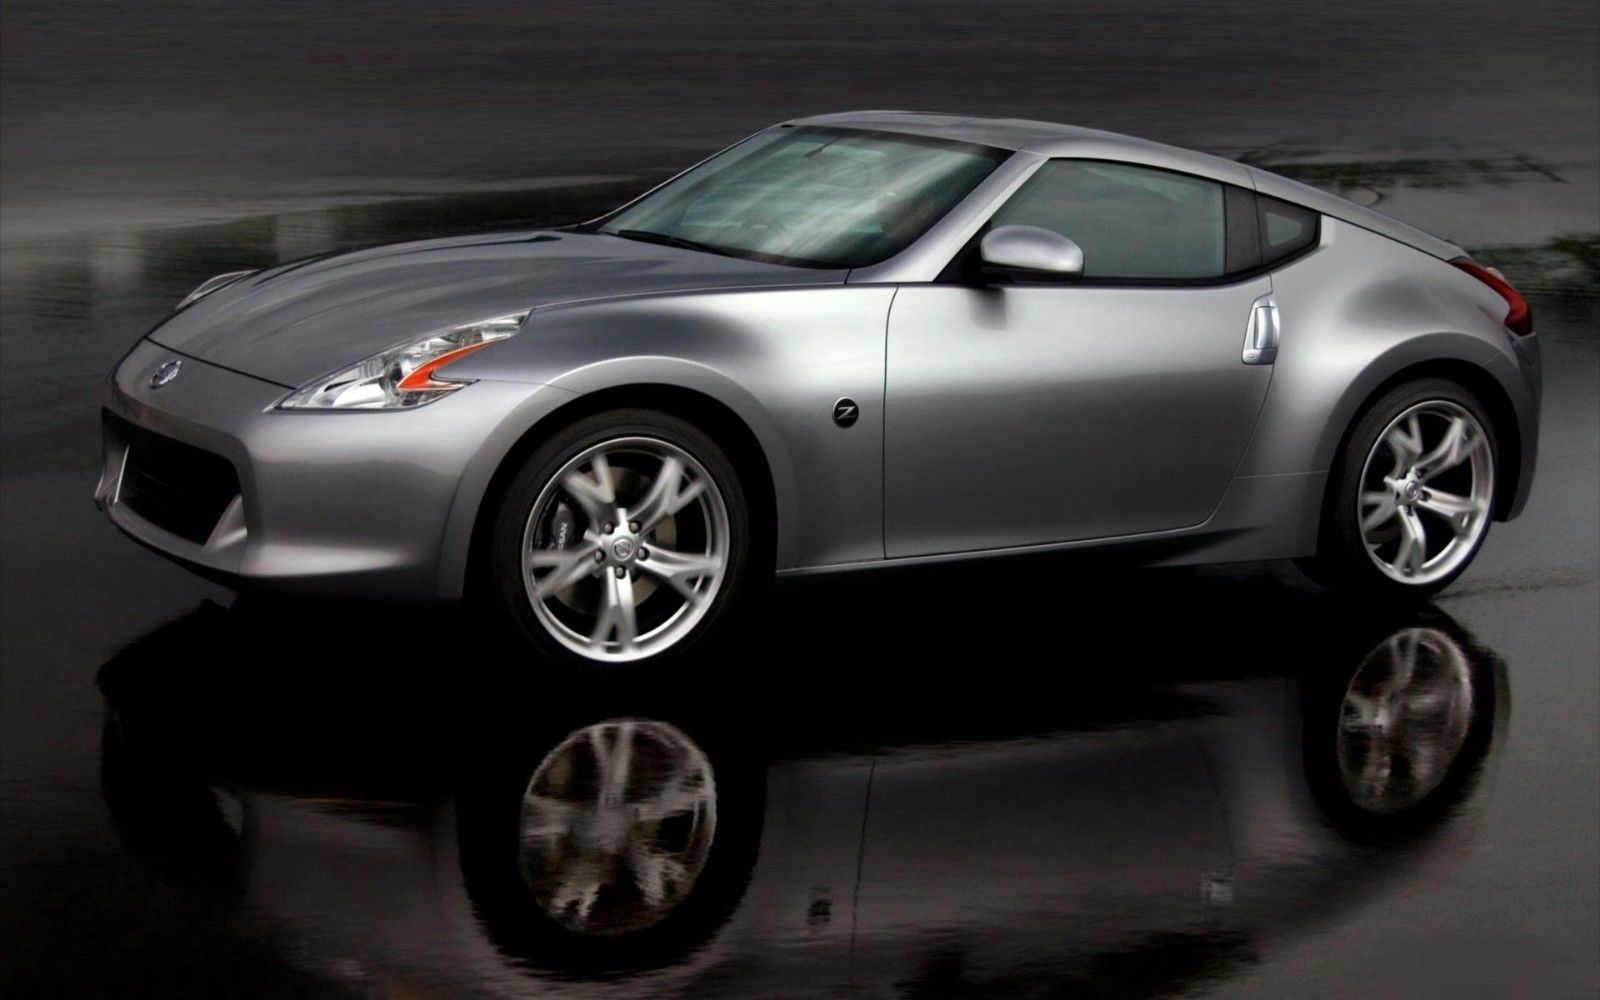 Primary image for 2012 NISSAN 370Z POSTER 24 x 36 INCH SILVER AWESOME POSTER!